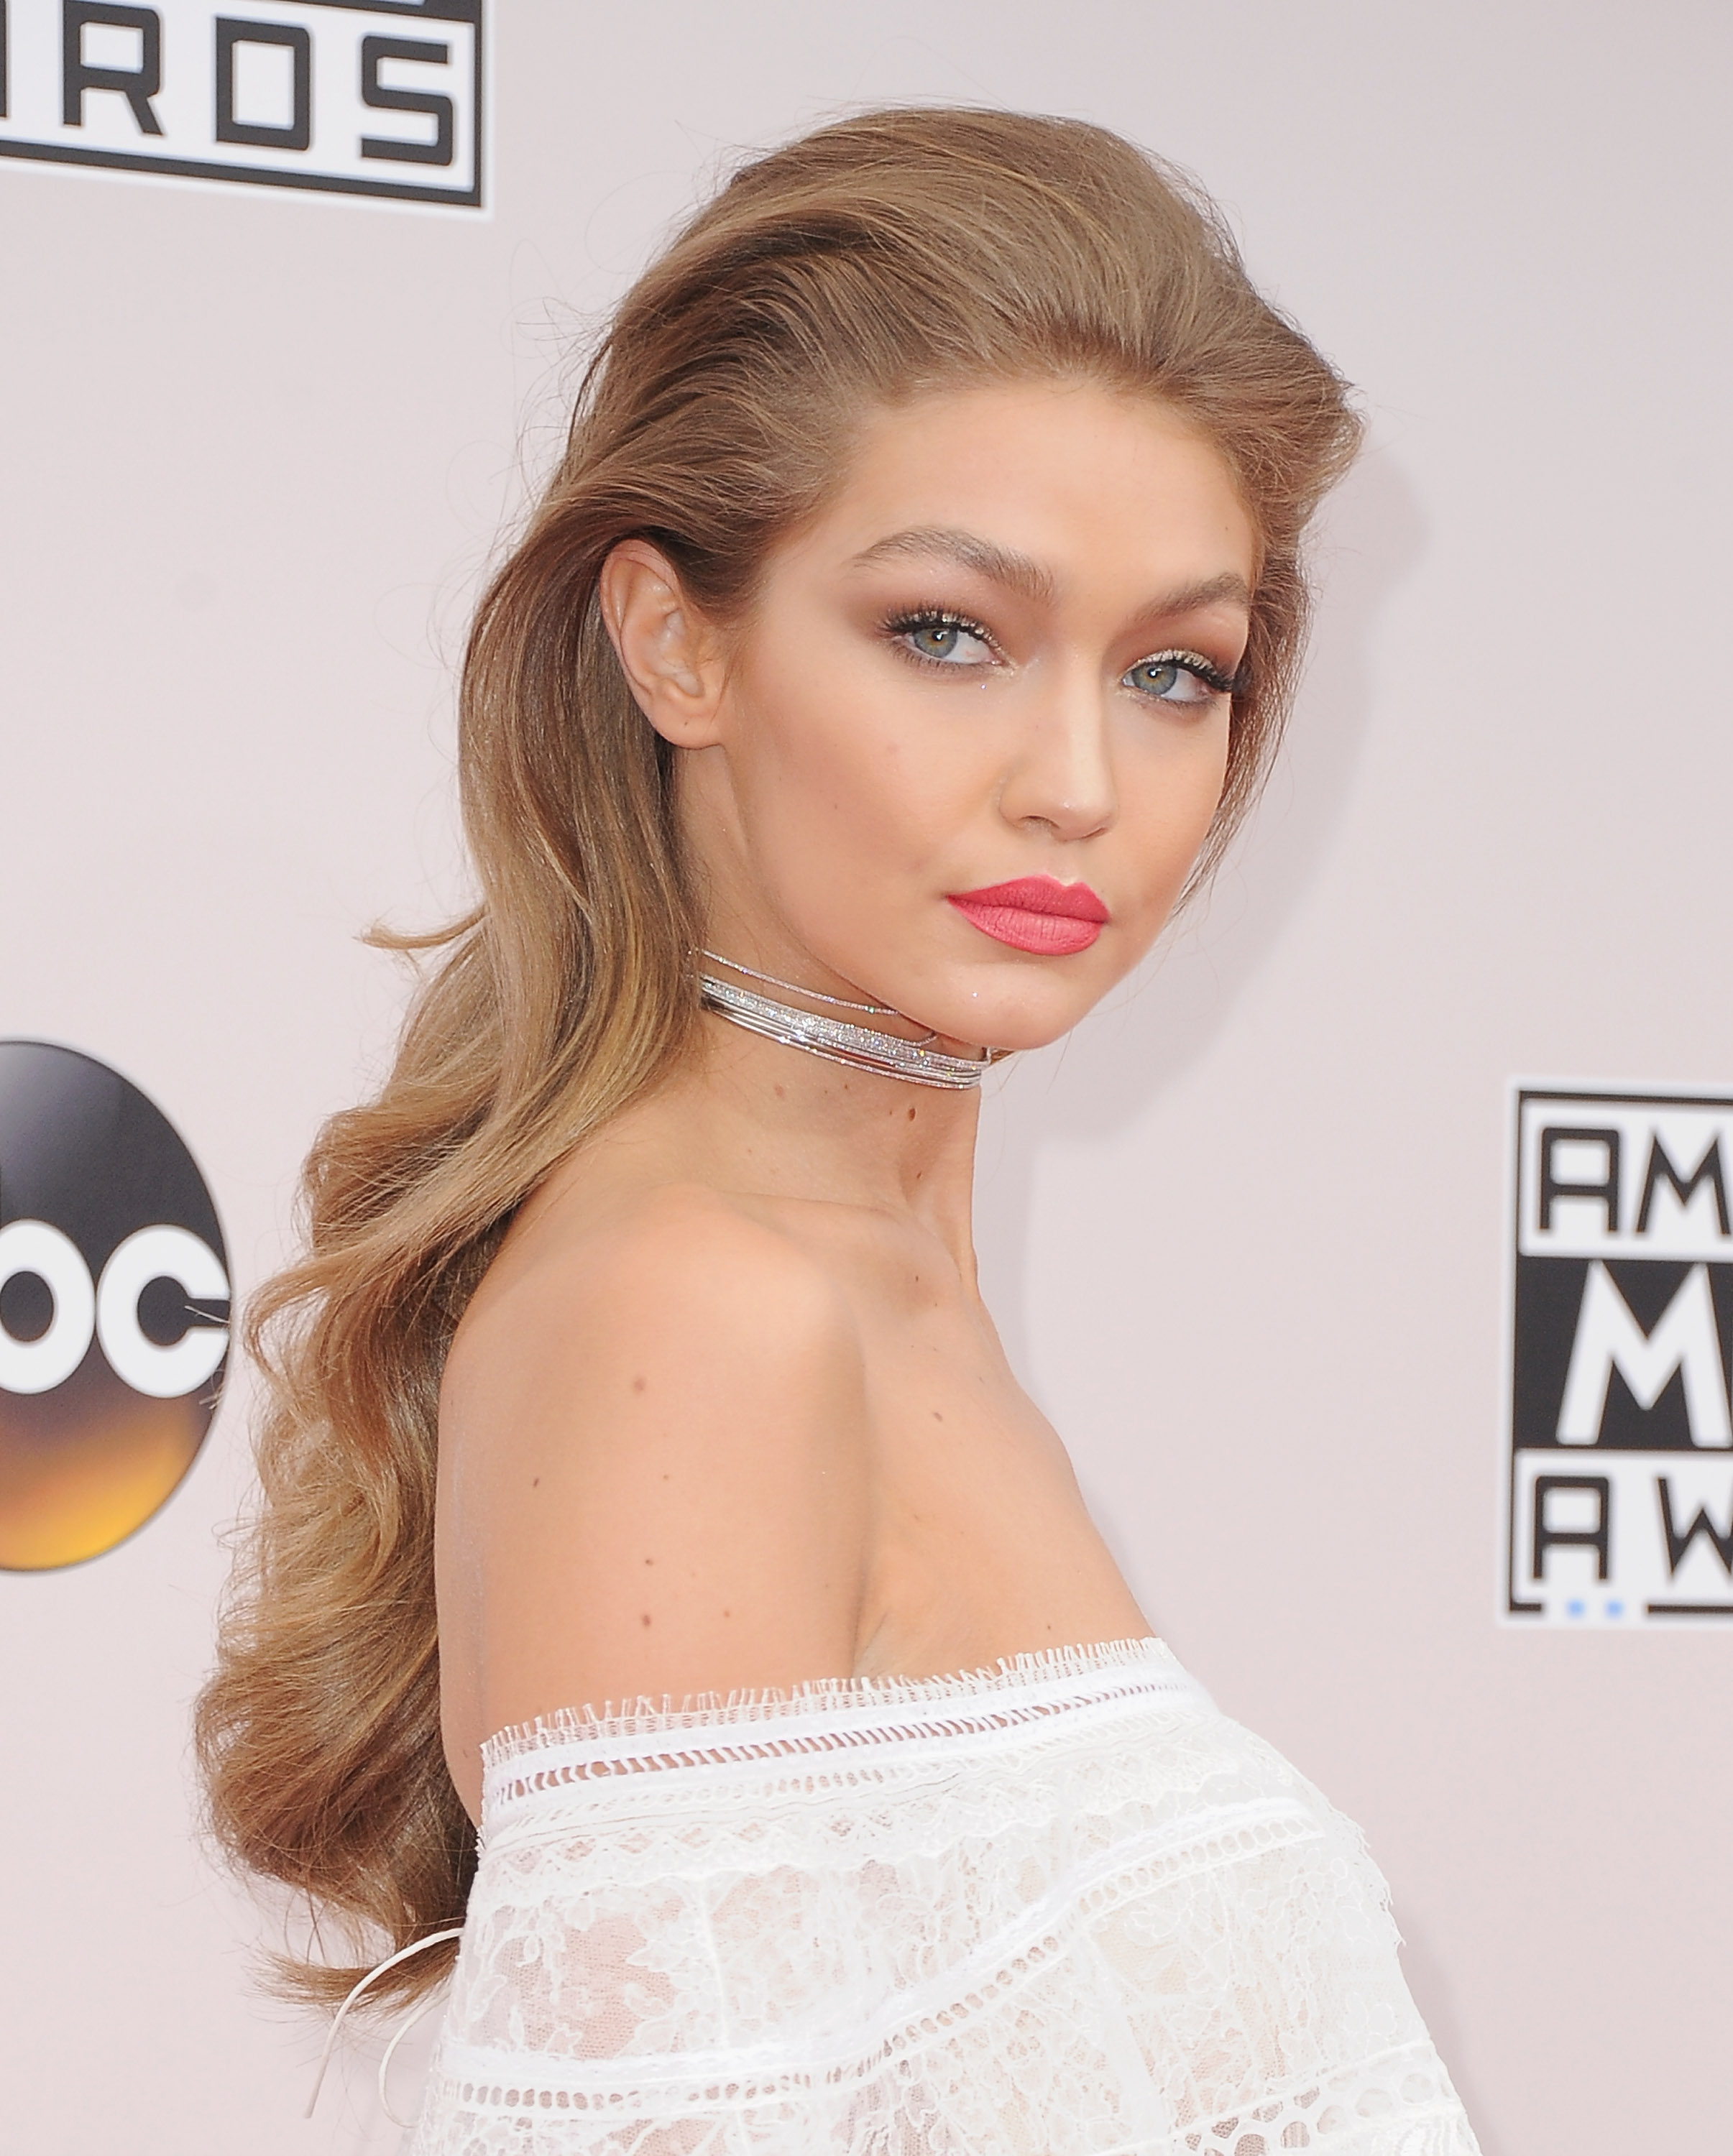 2016 AMA Trends: High Ponytails, Long Length and Berry Lips